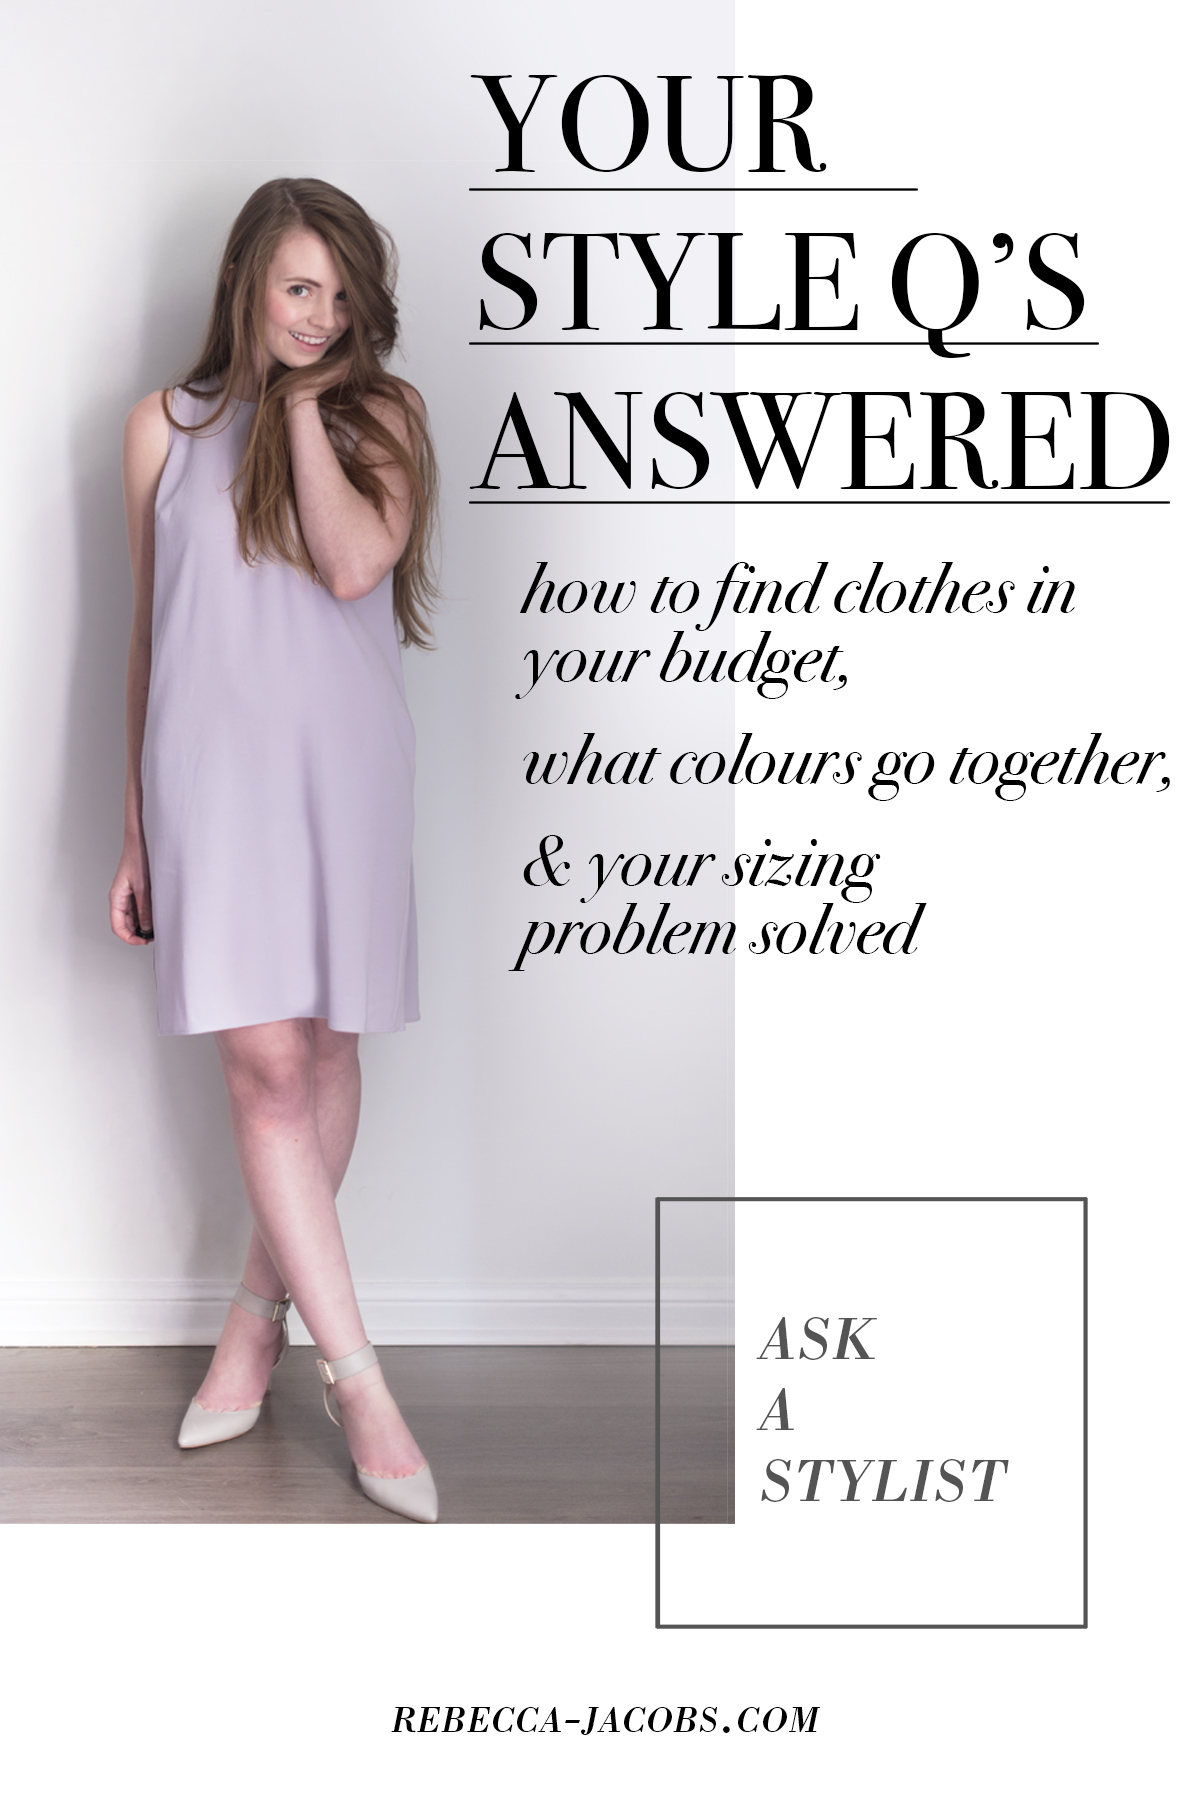 how-to-find-clothes-in-budget-personal-stlylist.jpg